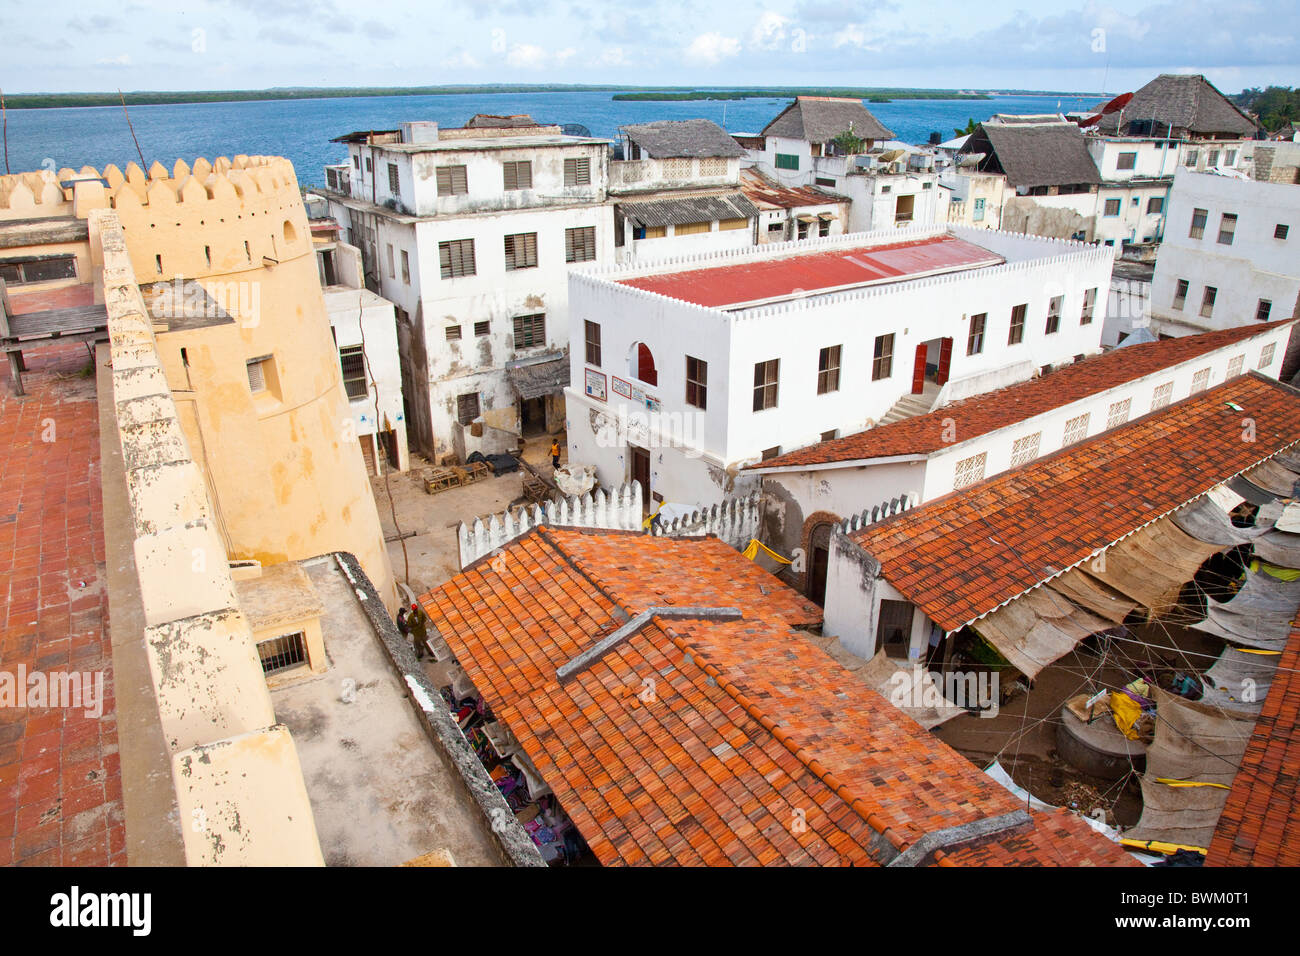 Lamu Fort or Fumo Madi ibn Abi Bakr, overlooking market and town, Lamu Island, Kenya Stock Photo